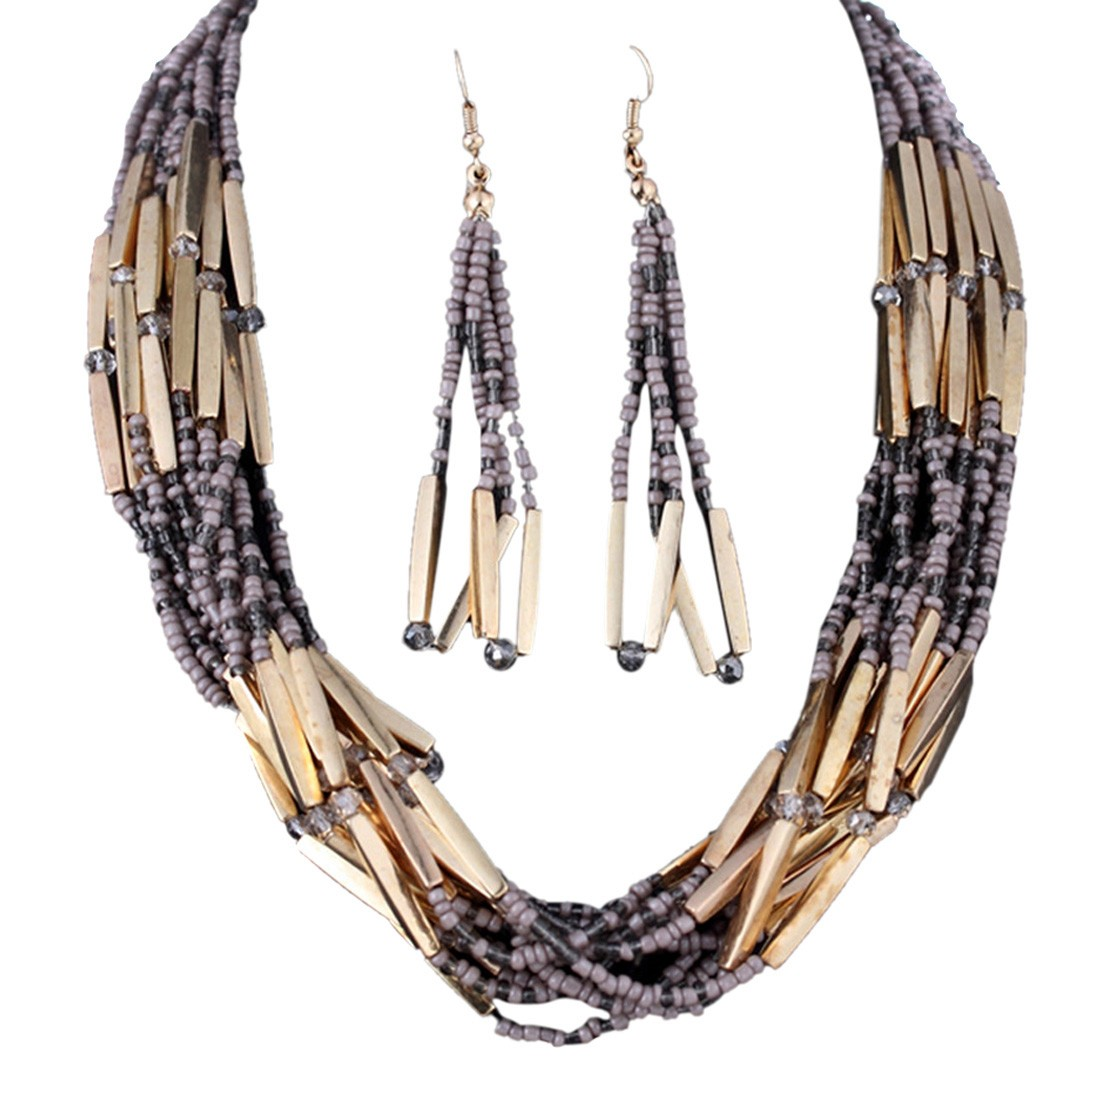 Vogue Lady's Small Beaded Torsade Multiple Layers Gold Necklace Earrings Set